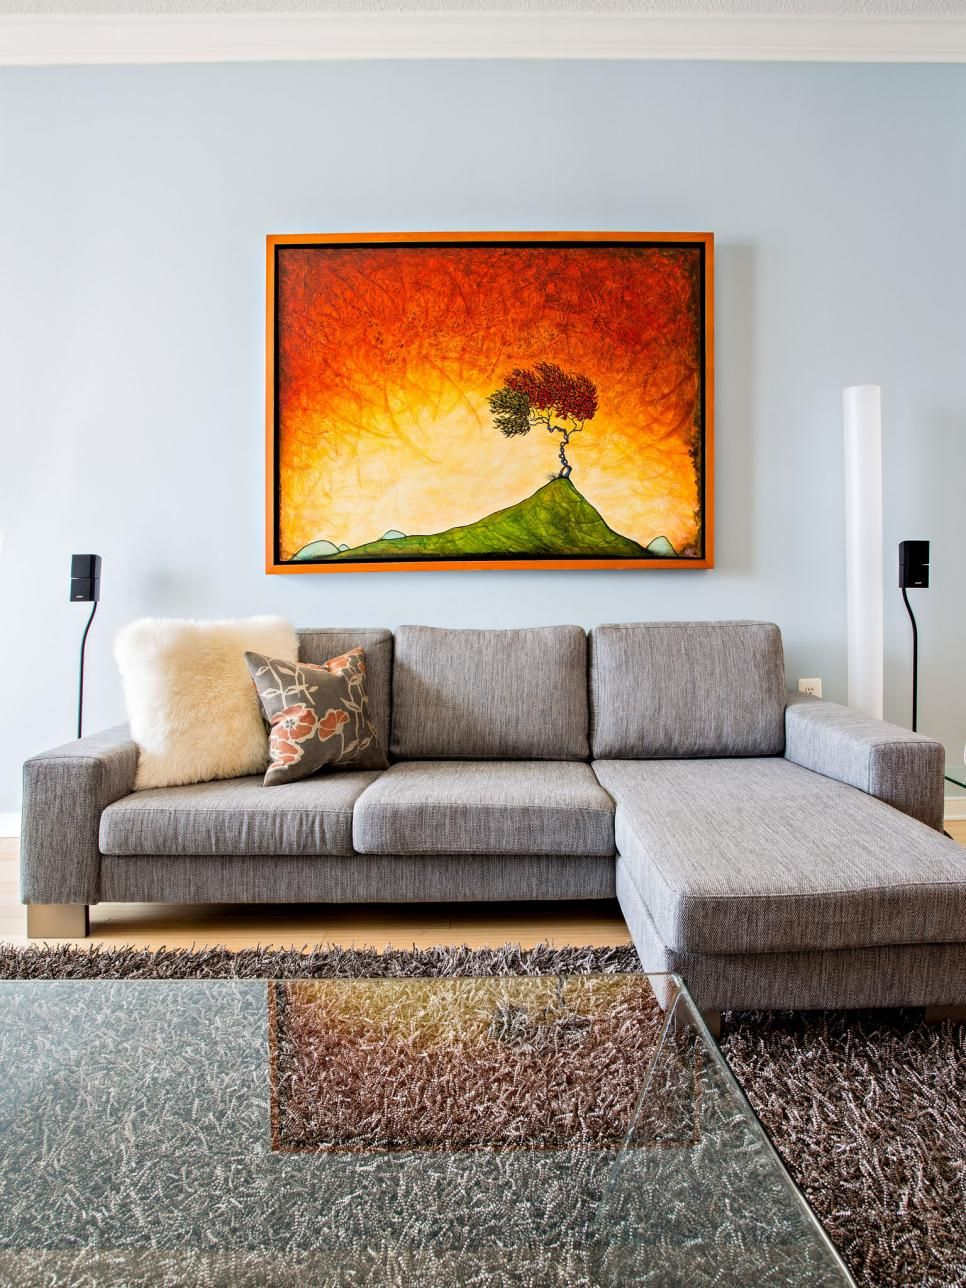 Bold orange-dominated artwork makes a strong focal point in this pale blue living room. A shaggy brown rug and light gray sectional sofa with a chaise round out the room's color palette.